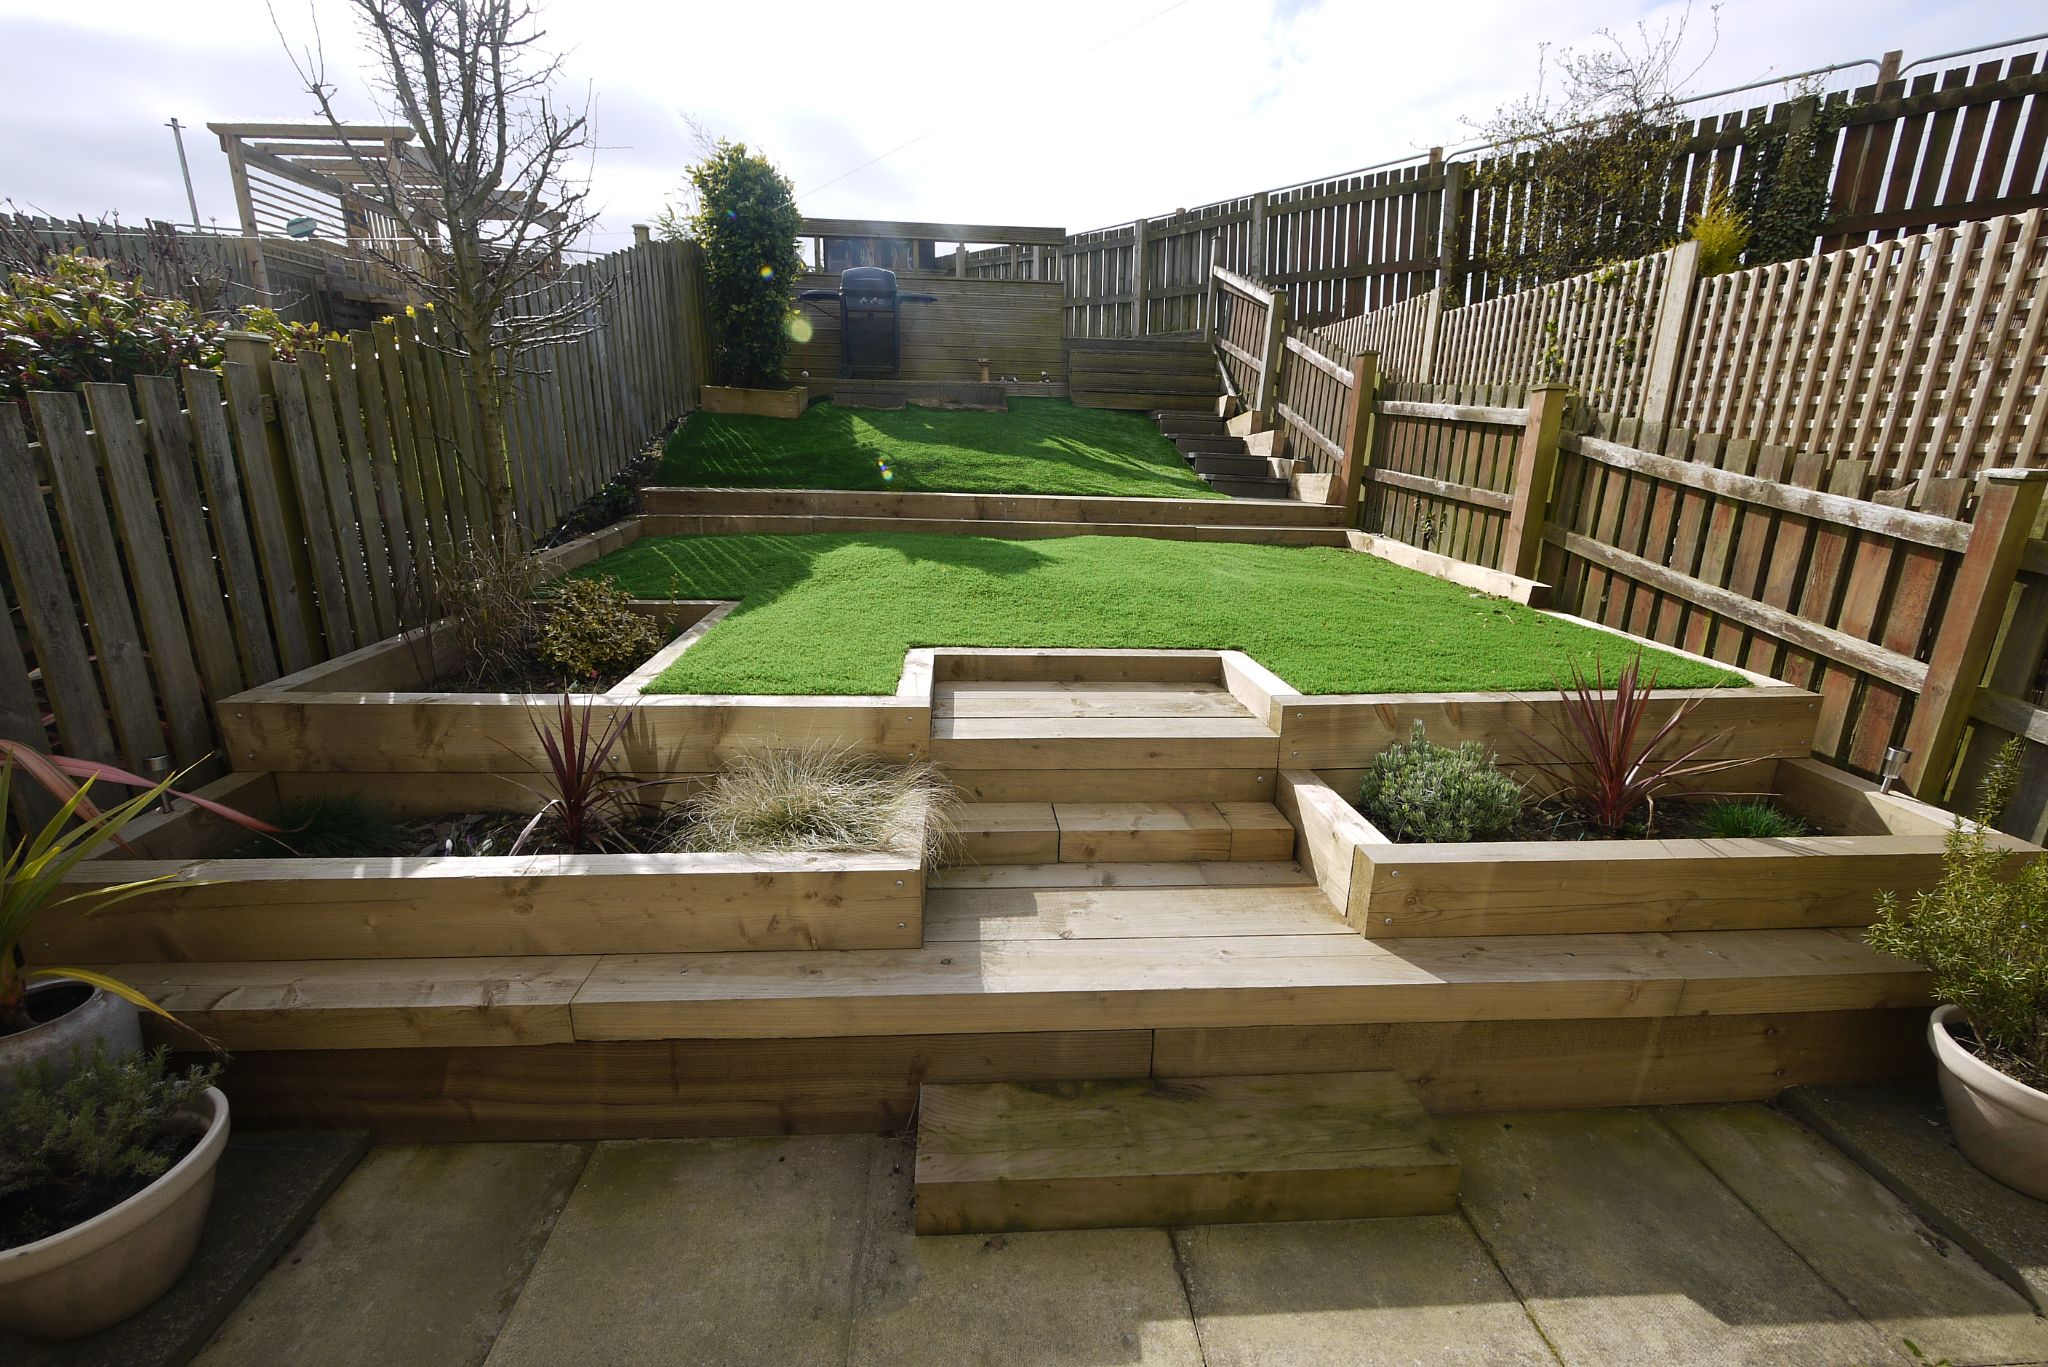 4 bedroom town house SSTC in Brighouse - Garden 1.